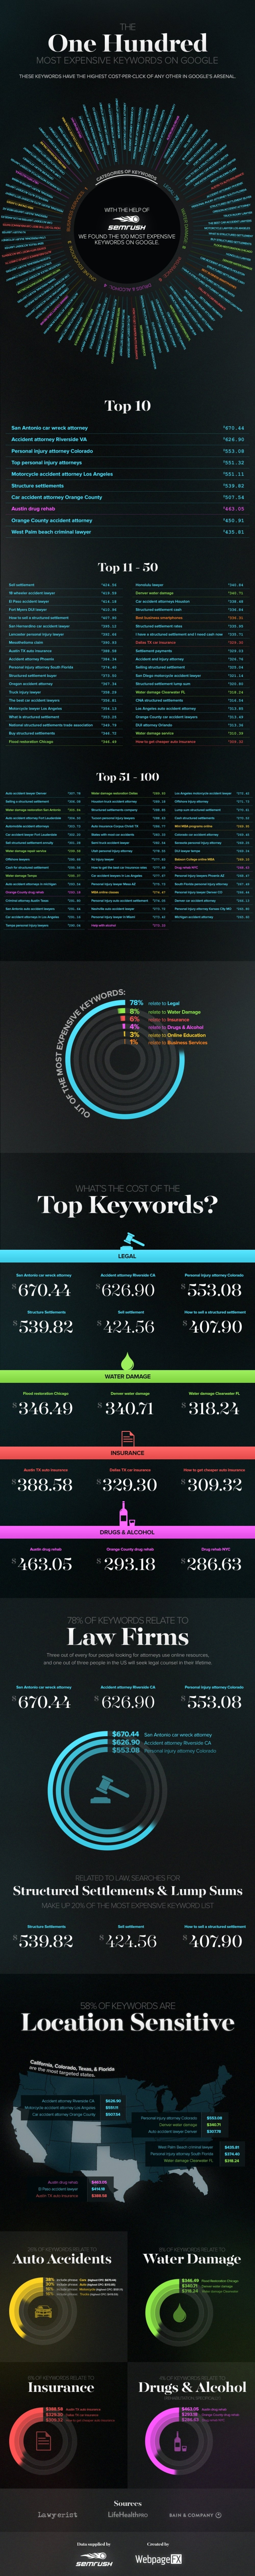 The 100 Most Expensive Keywords to Bid for on Google Adwords